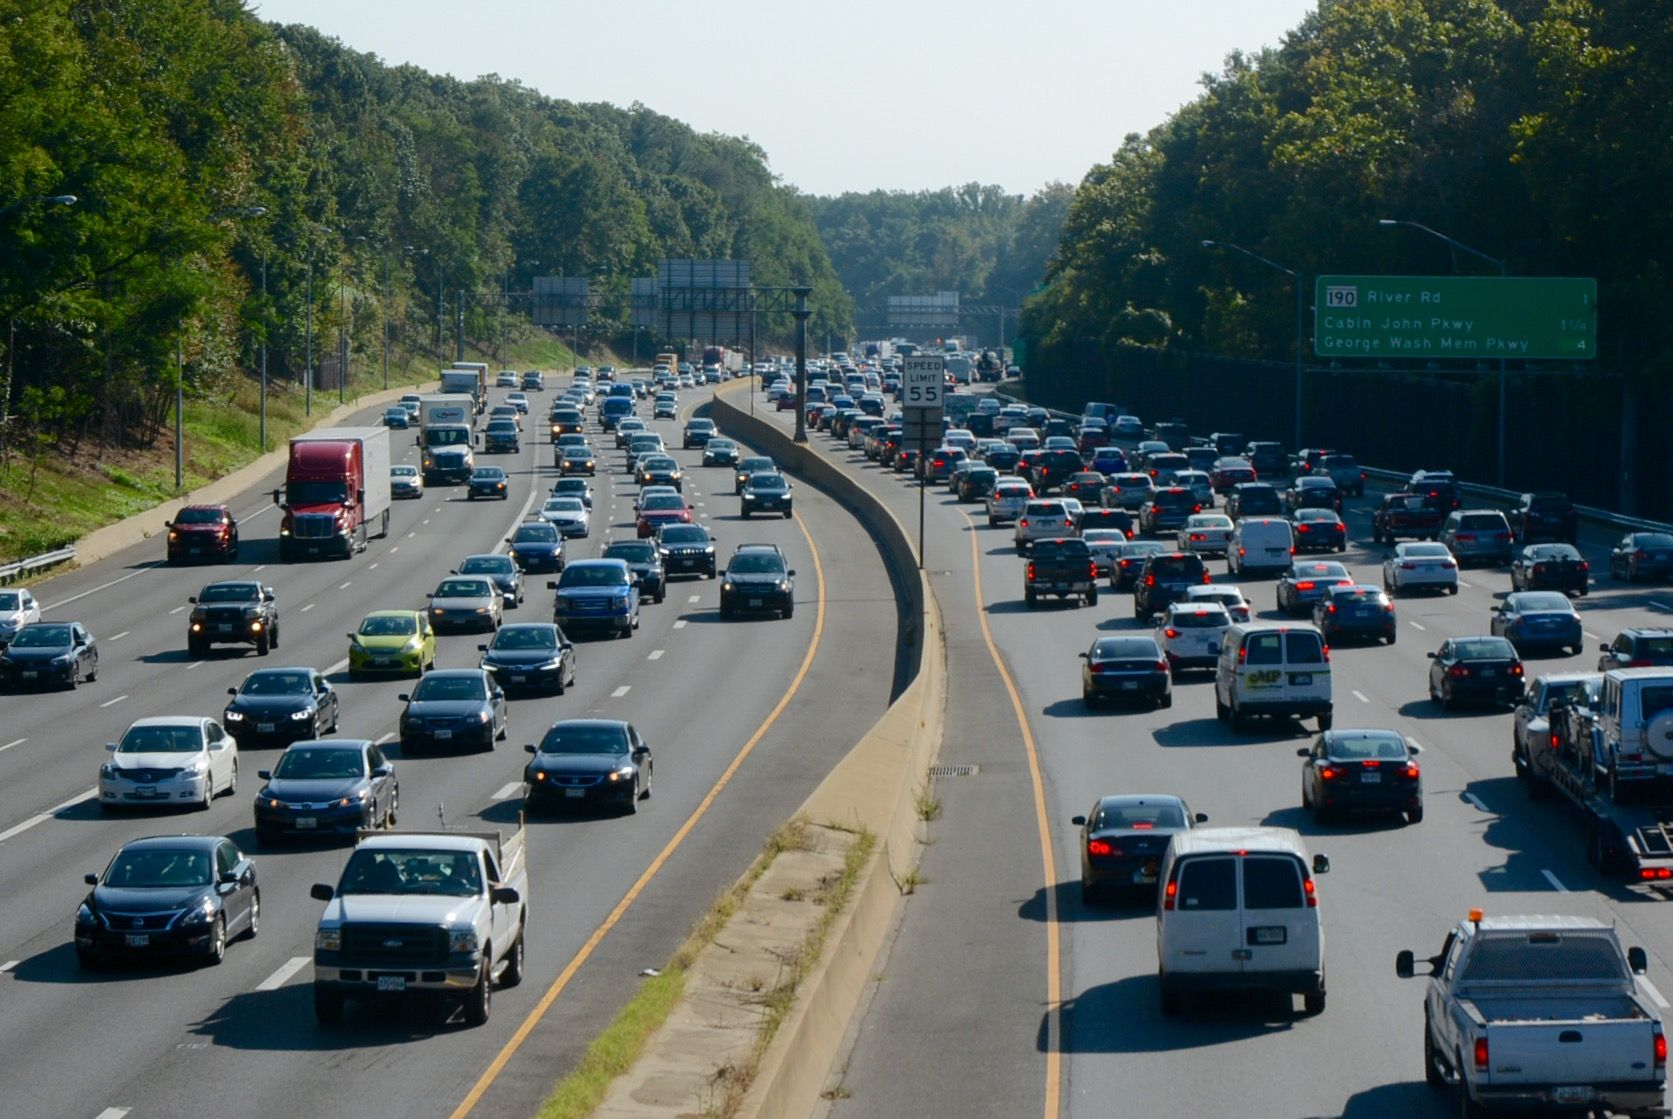 Holiday speeding crackdown: Md. police write 265 tickets in 4 hours on Beltway